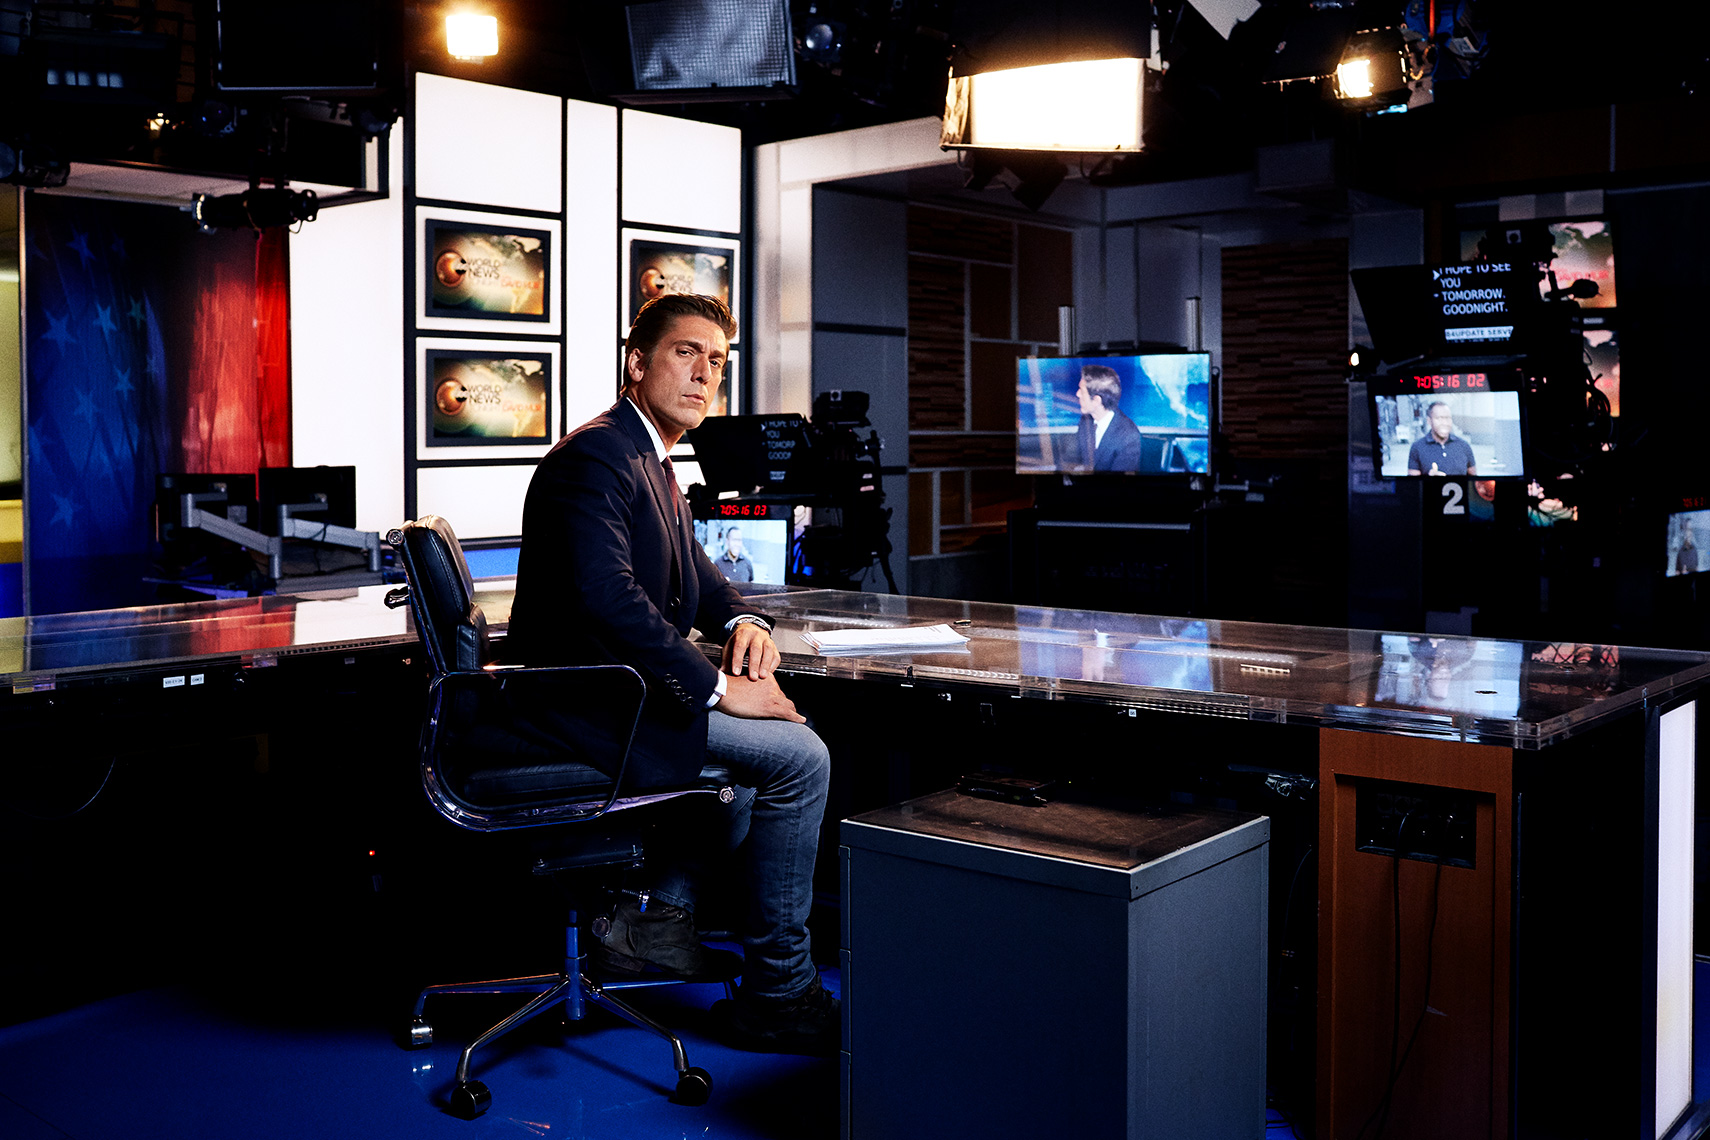 Rick_Wenner_David_Muir_030_Retouched